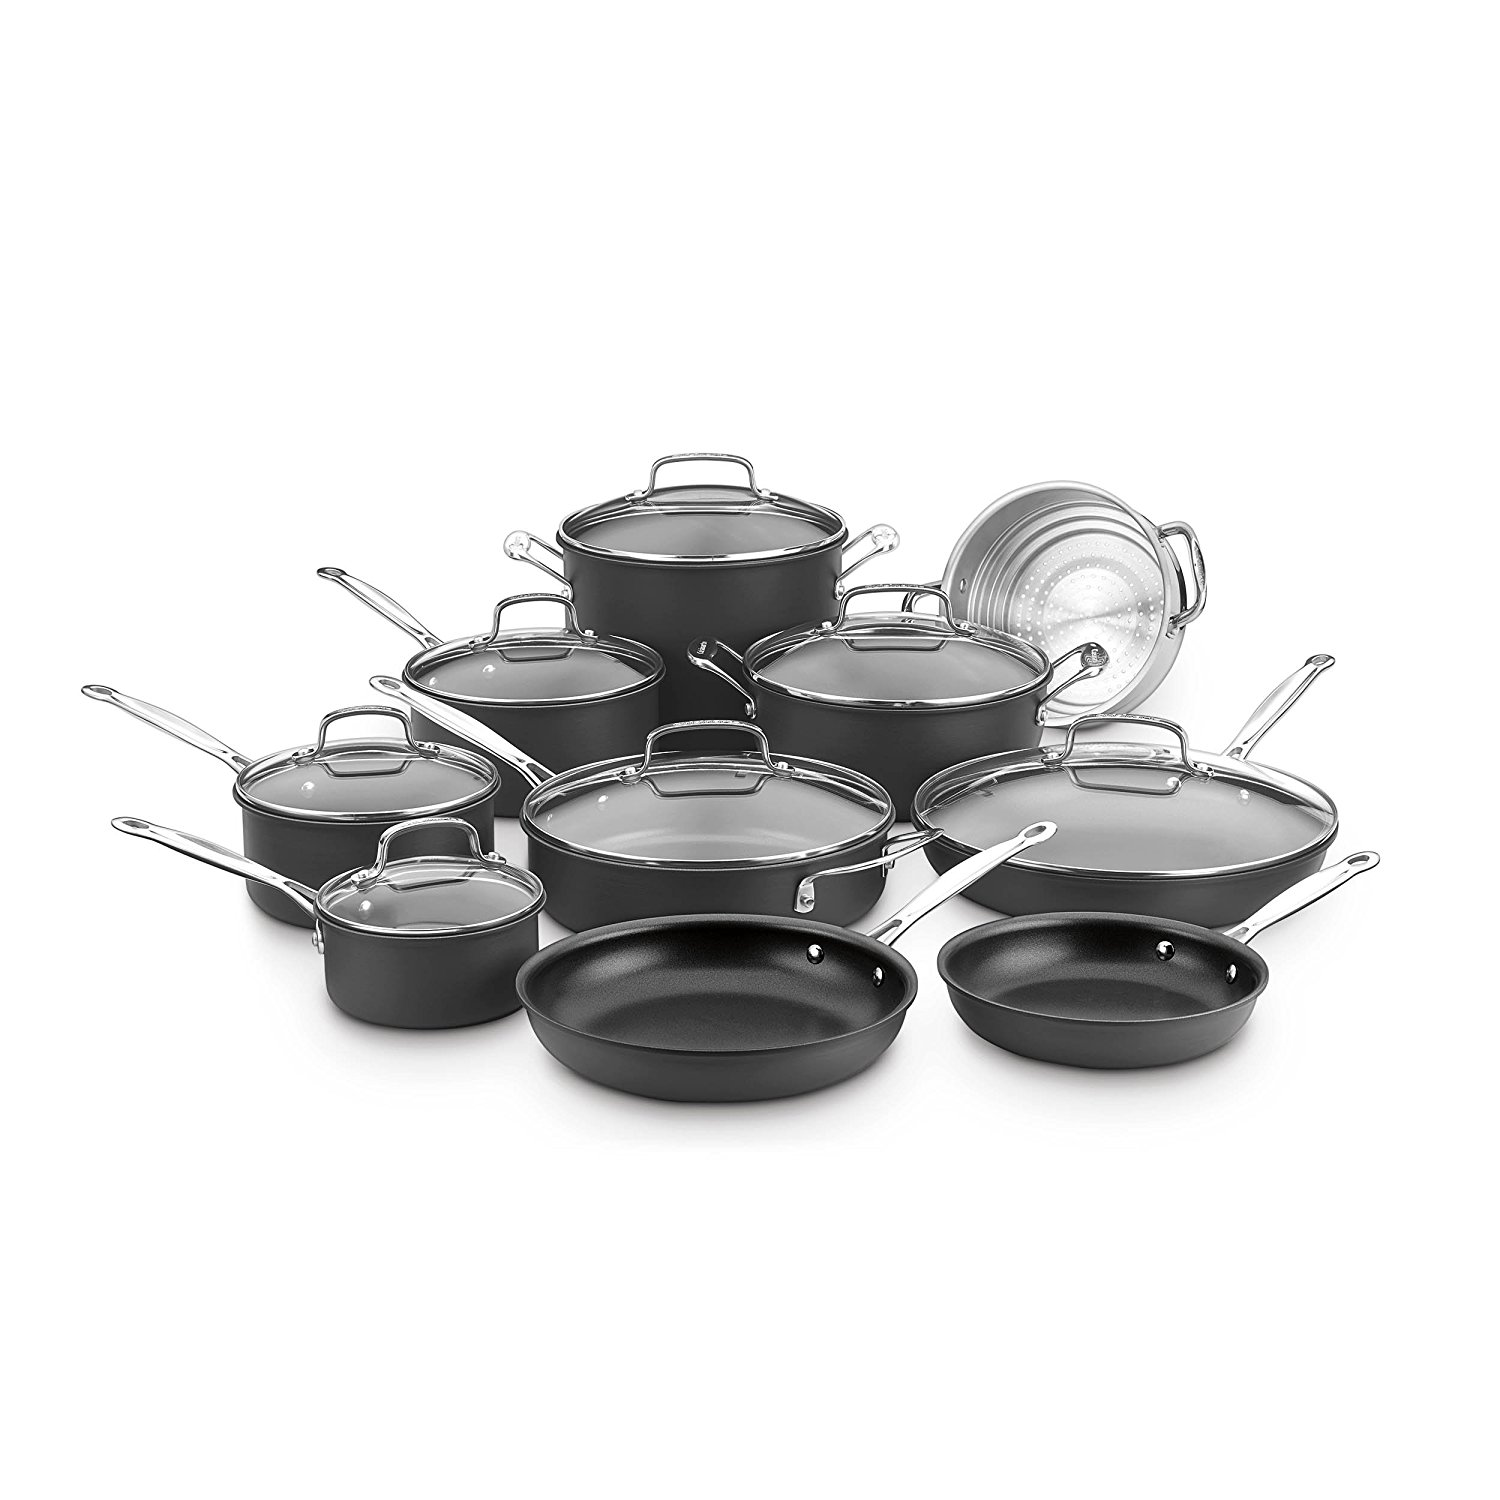 Cuisinart Chef's Classic Hard Anodized Non-Stick 17 Piece Cookware Set, 66-17